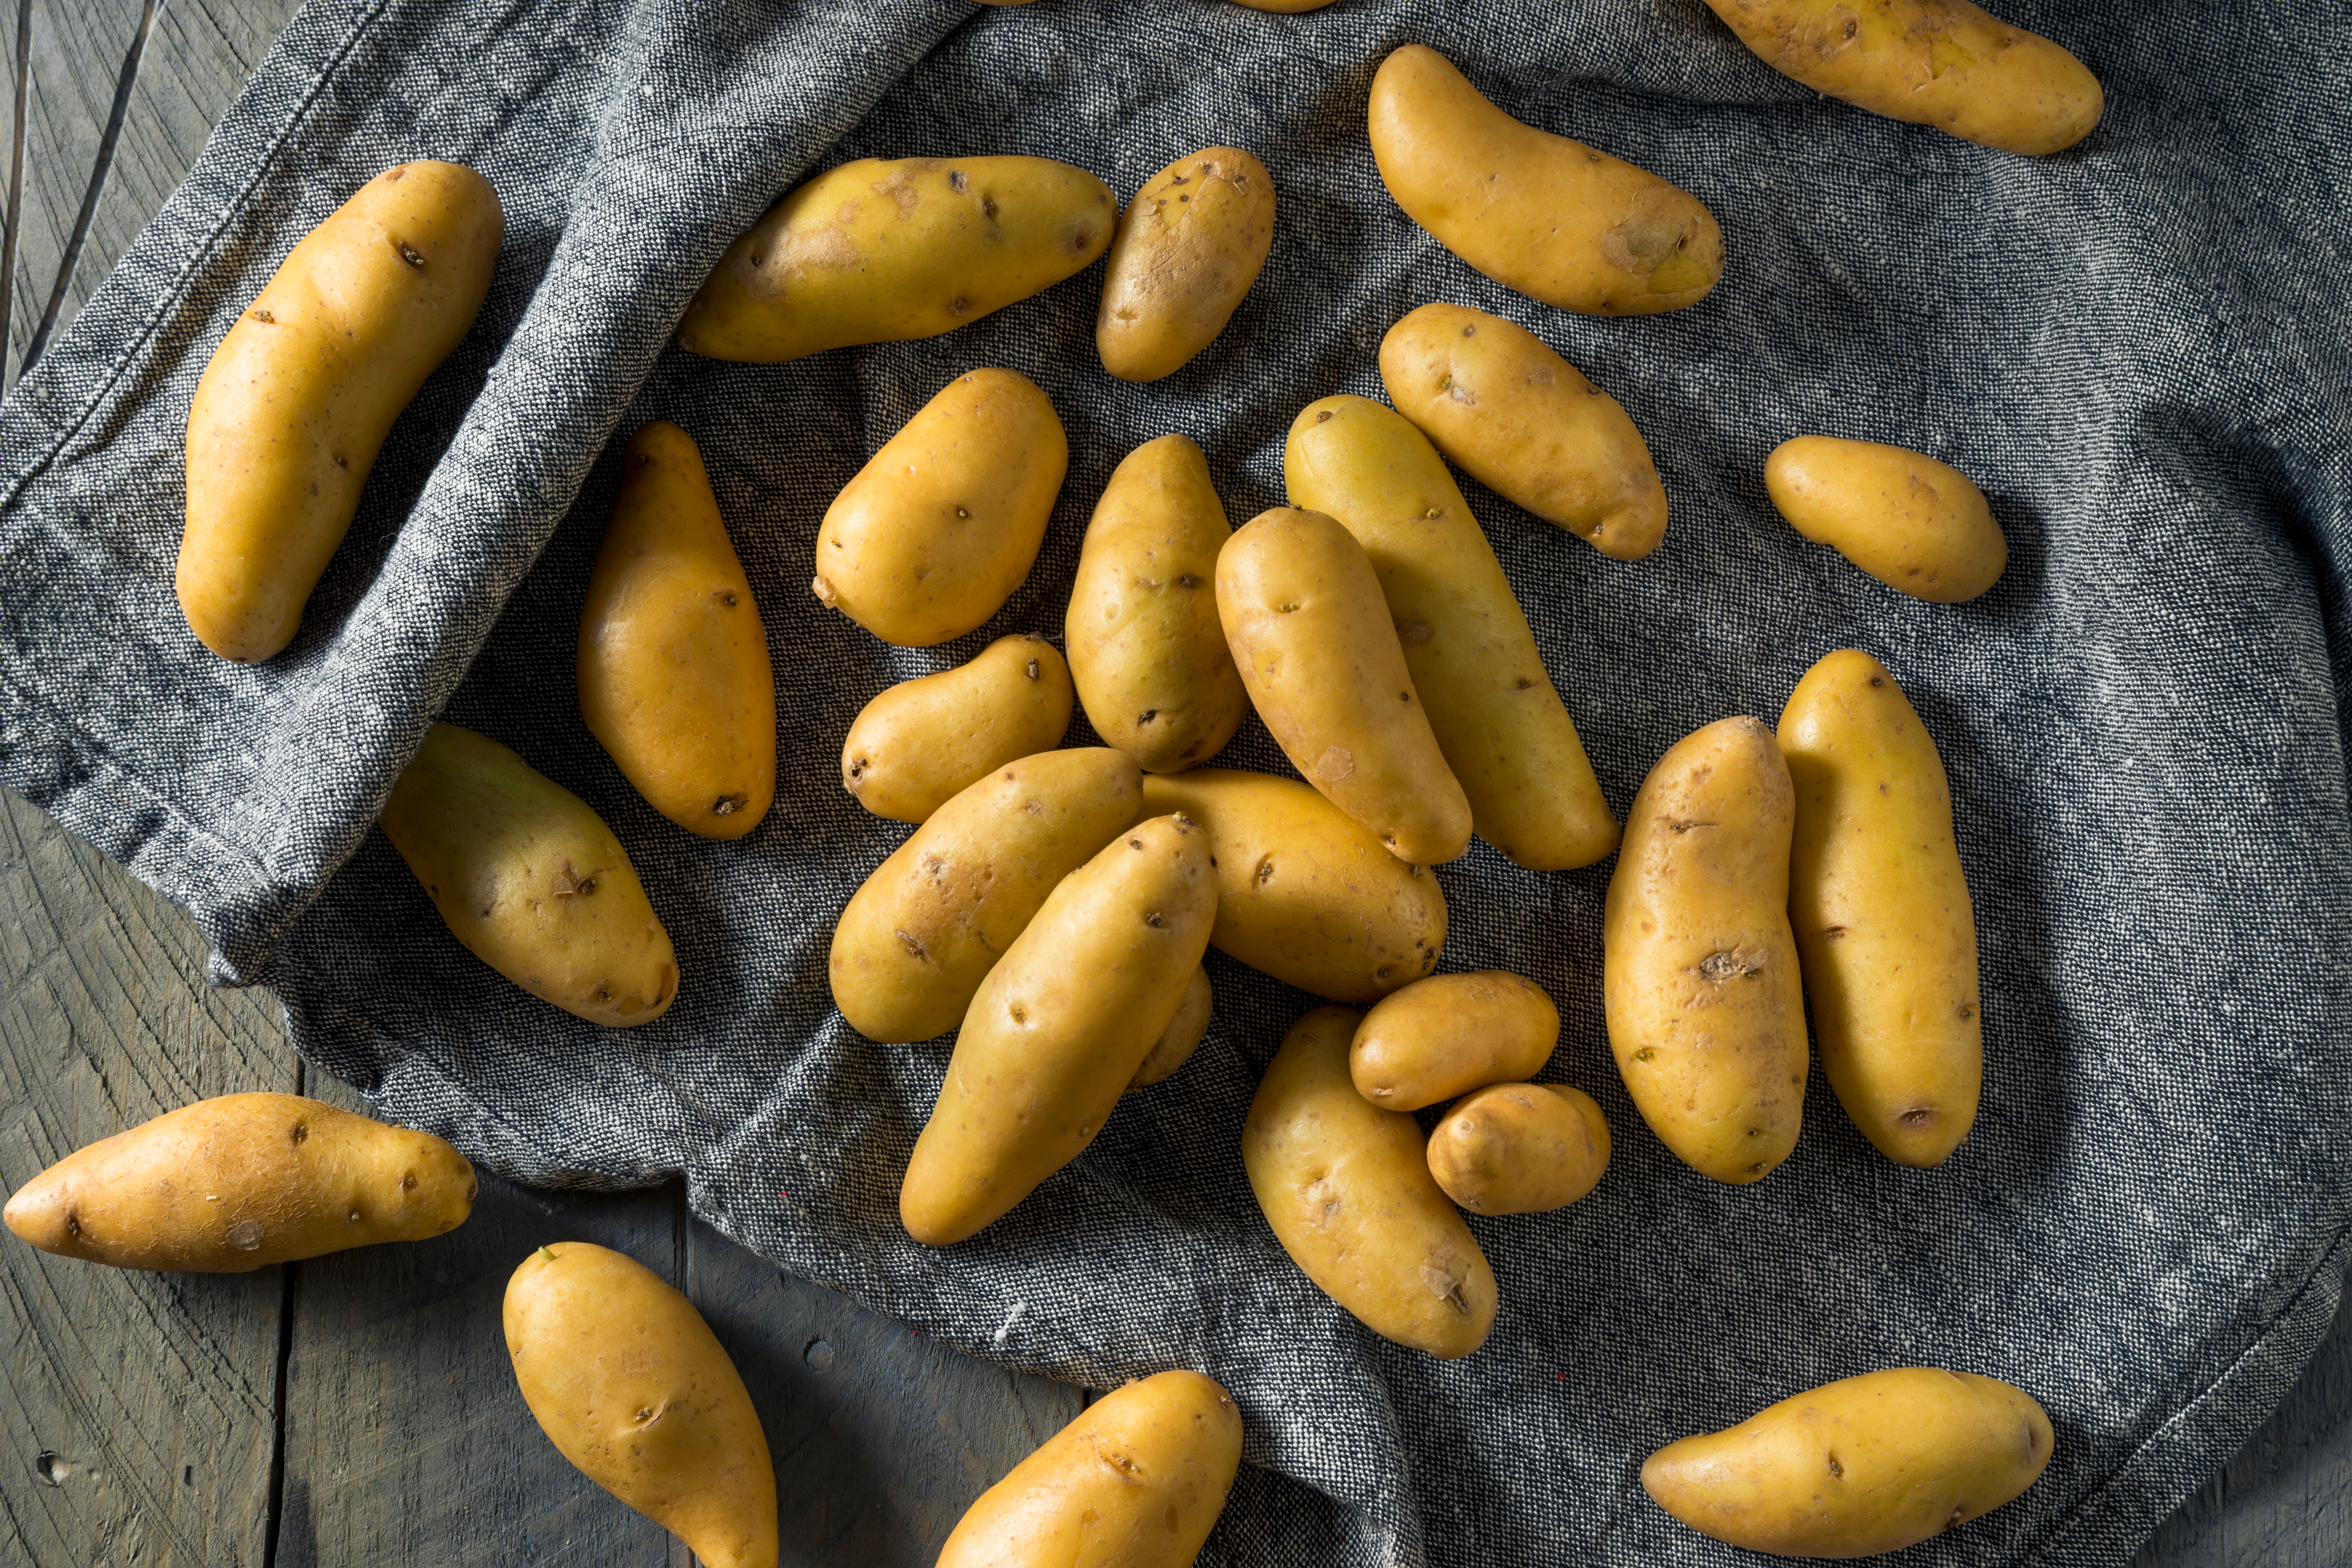 Raw Yellow Fingerling Potatoes Ready to